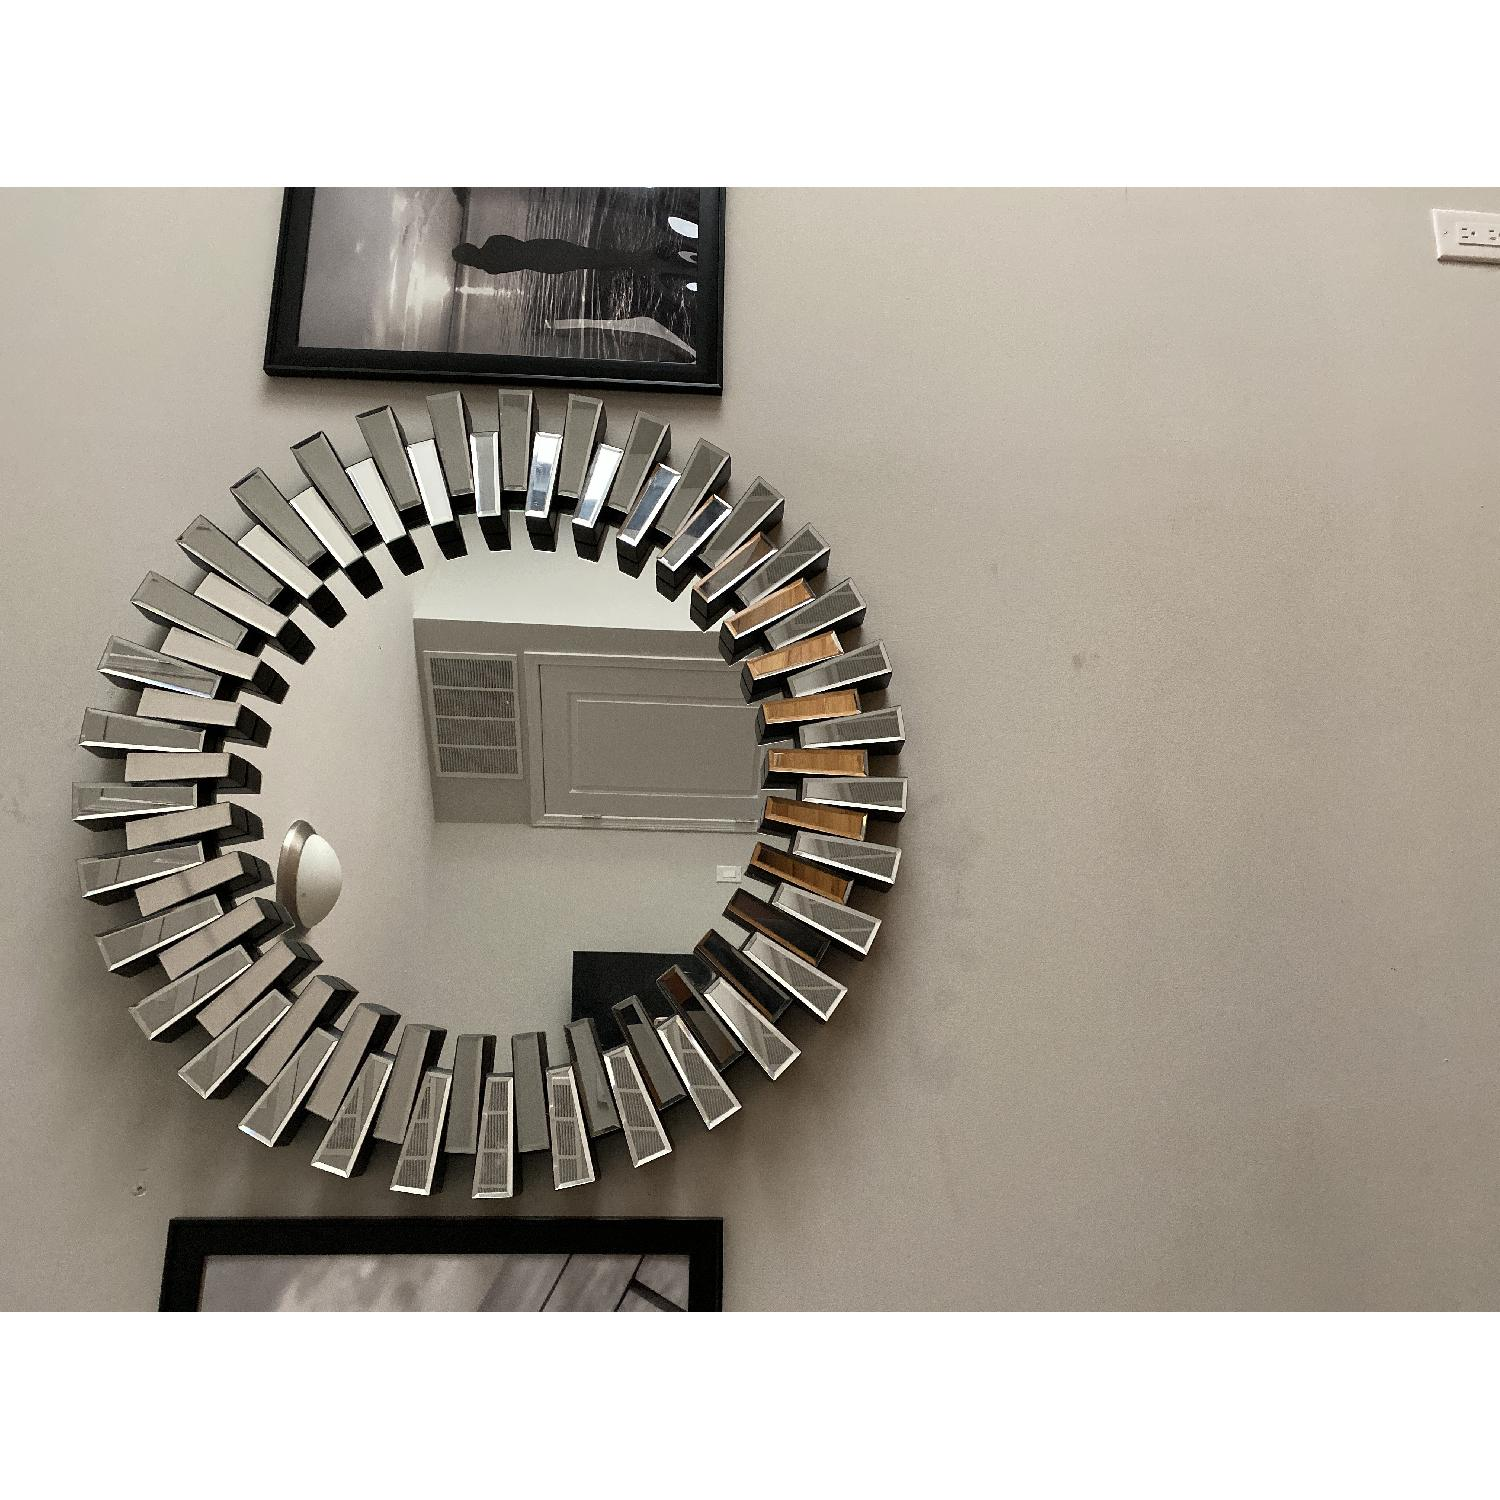 Christopher Knight Home Cienega Round Wall Mirror - image-1